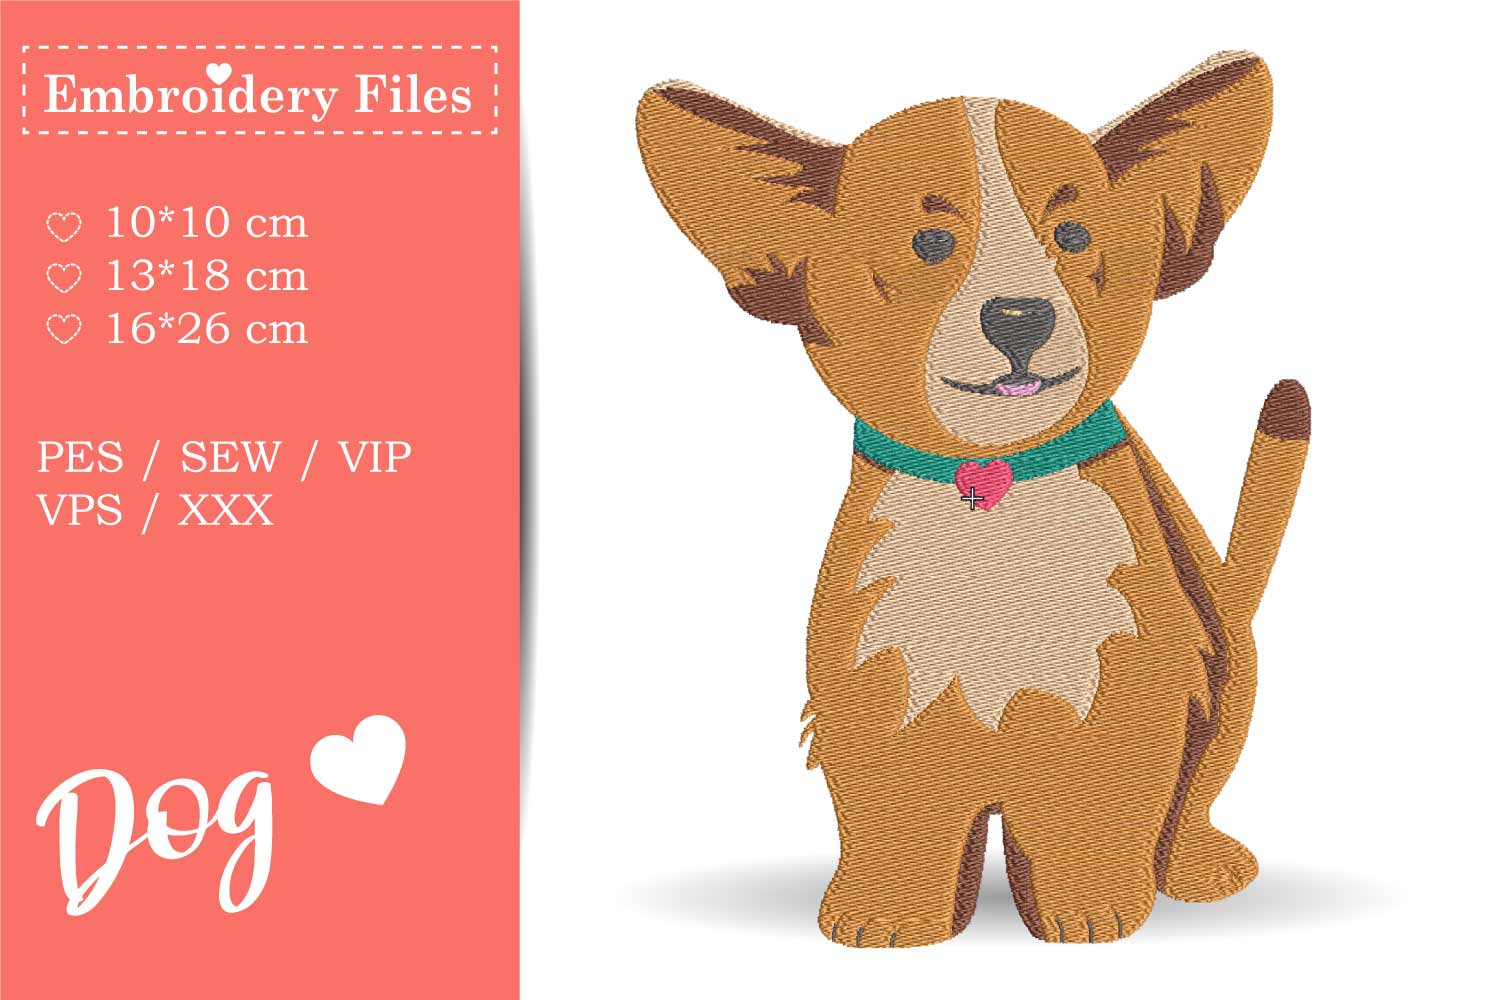 Dogs - Mini Bundle - Embroidery Files for Beginners example image 8